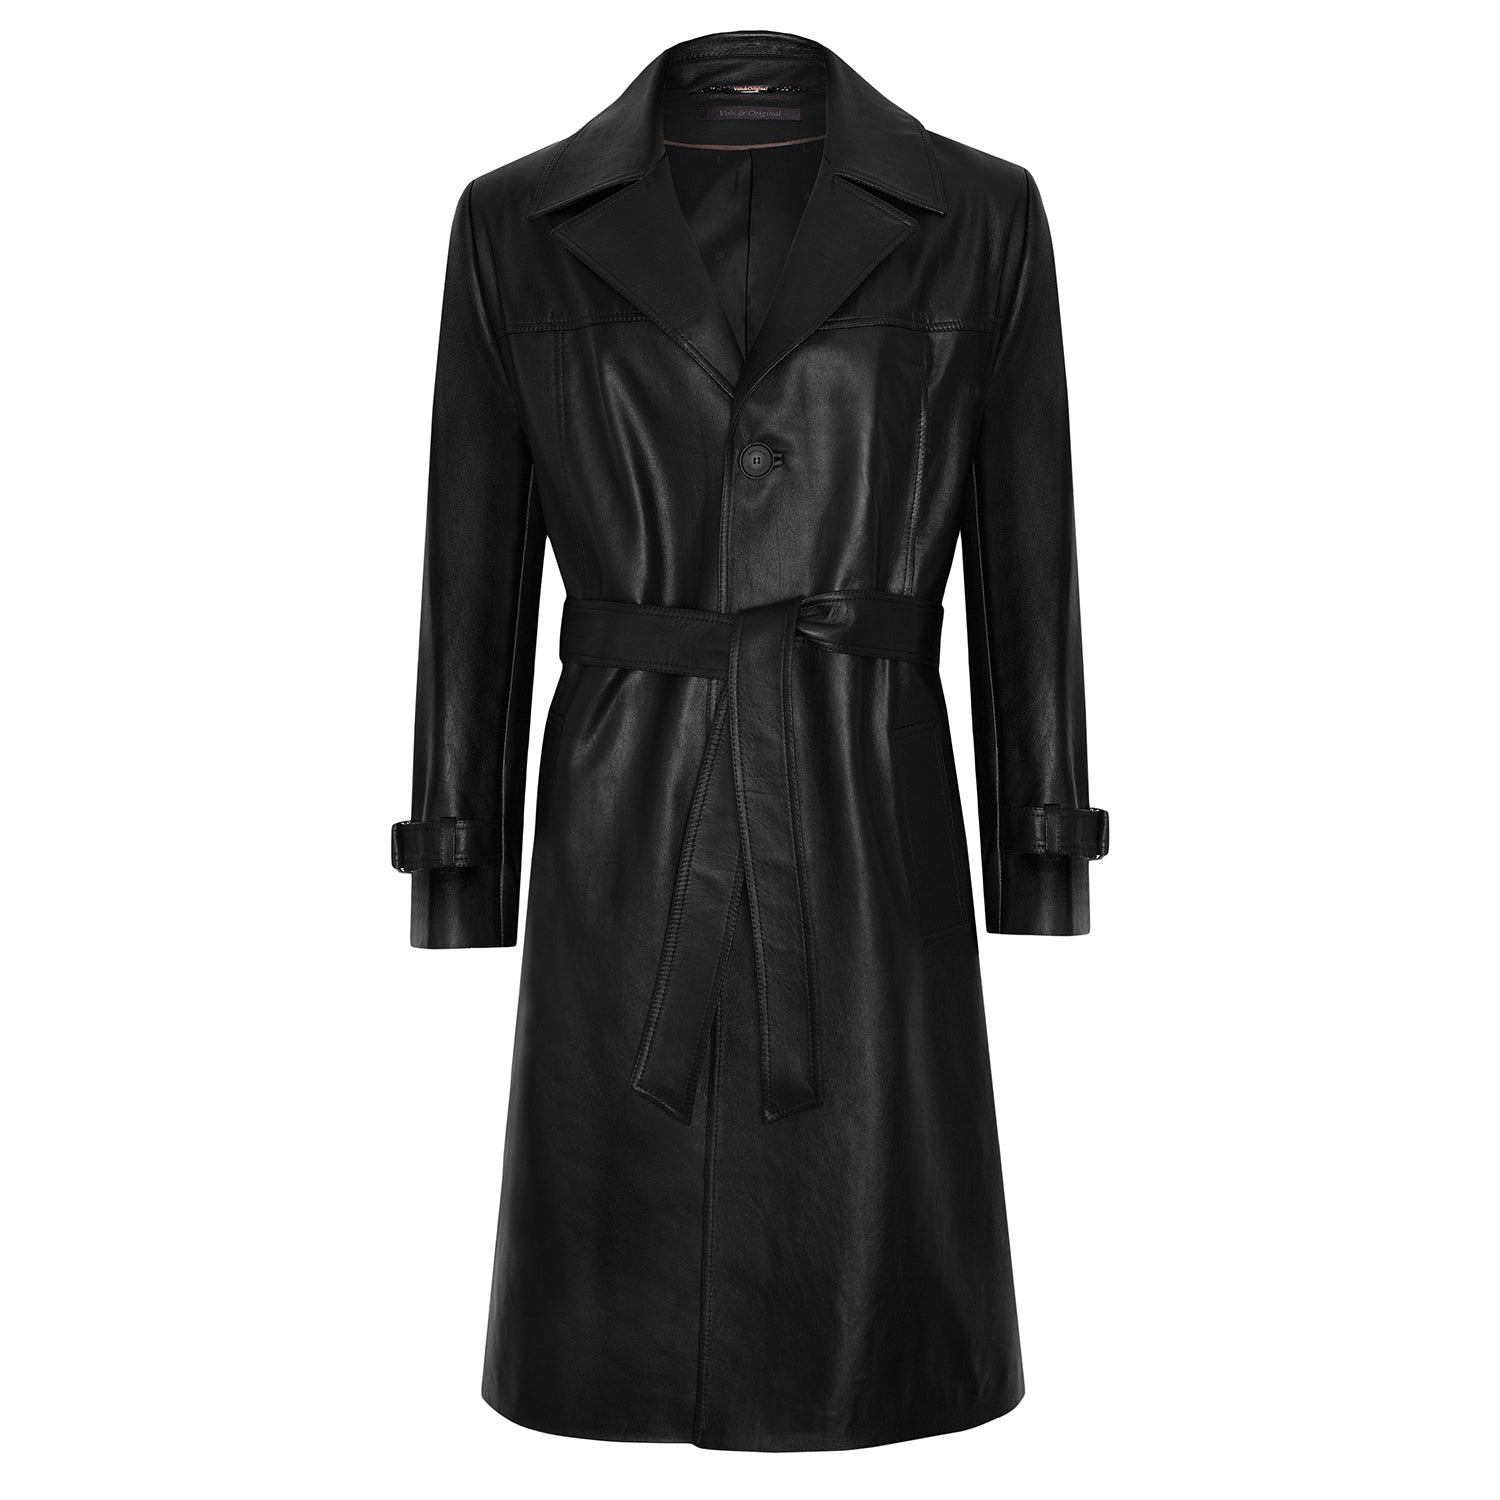 'V' Leather Trench Coat With Amen Break Print - VOLS & ORIGINAL